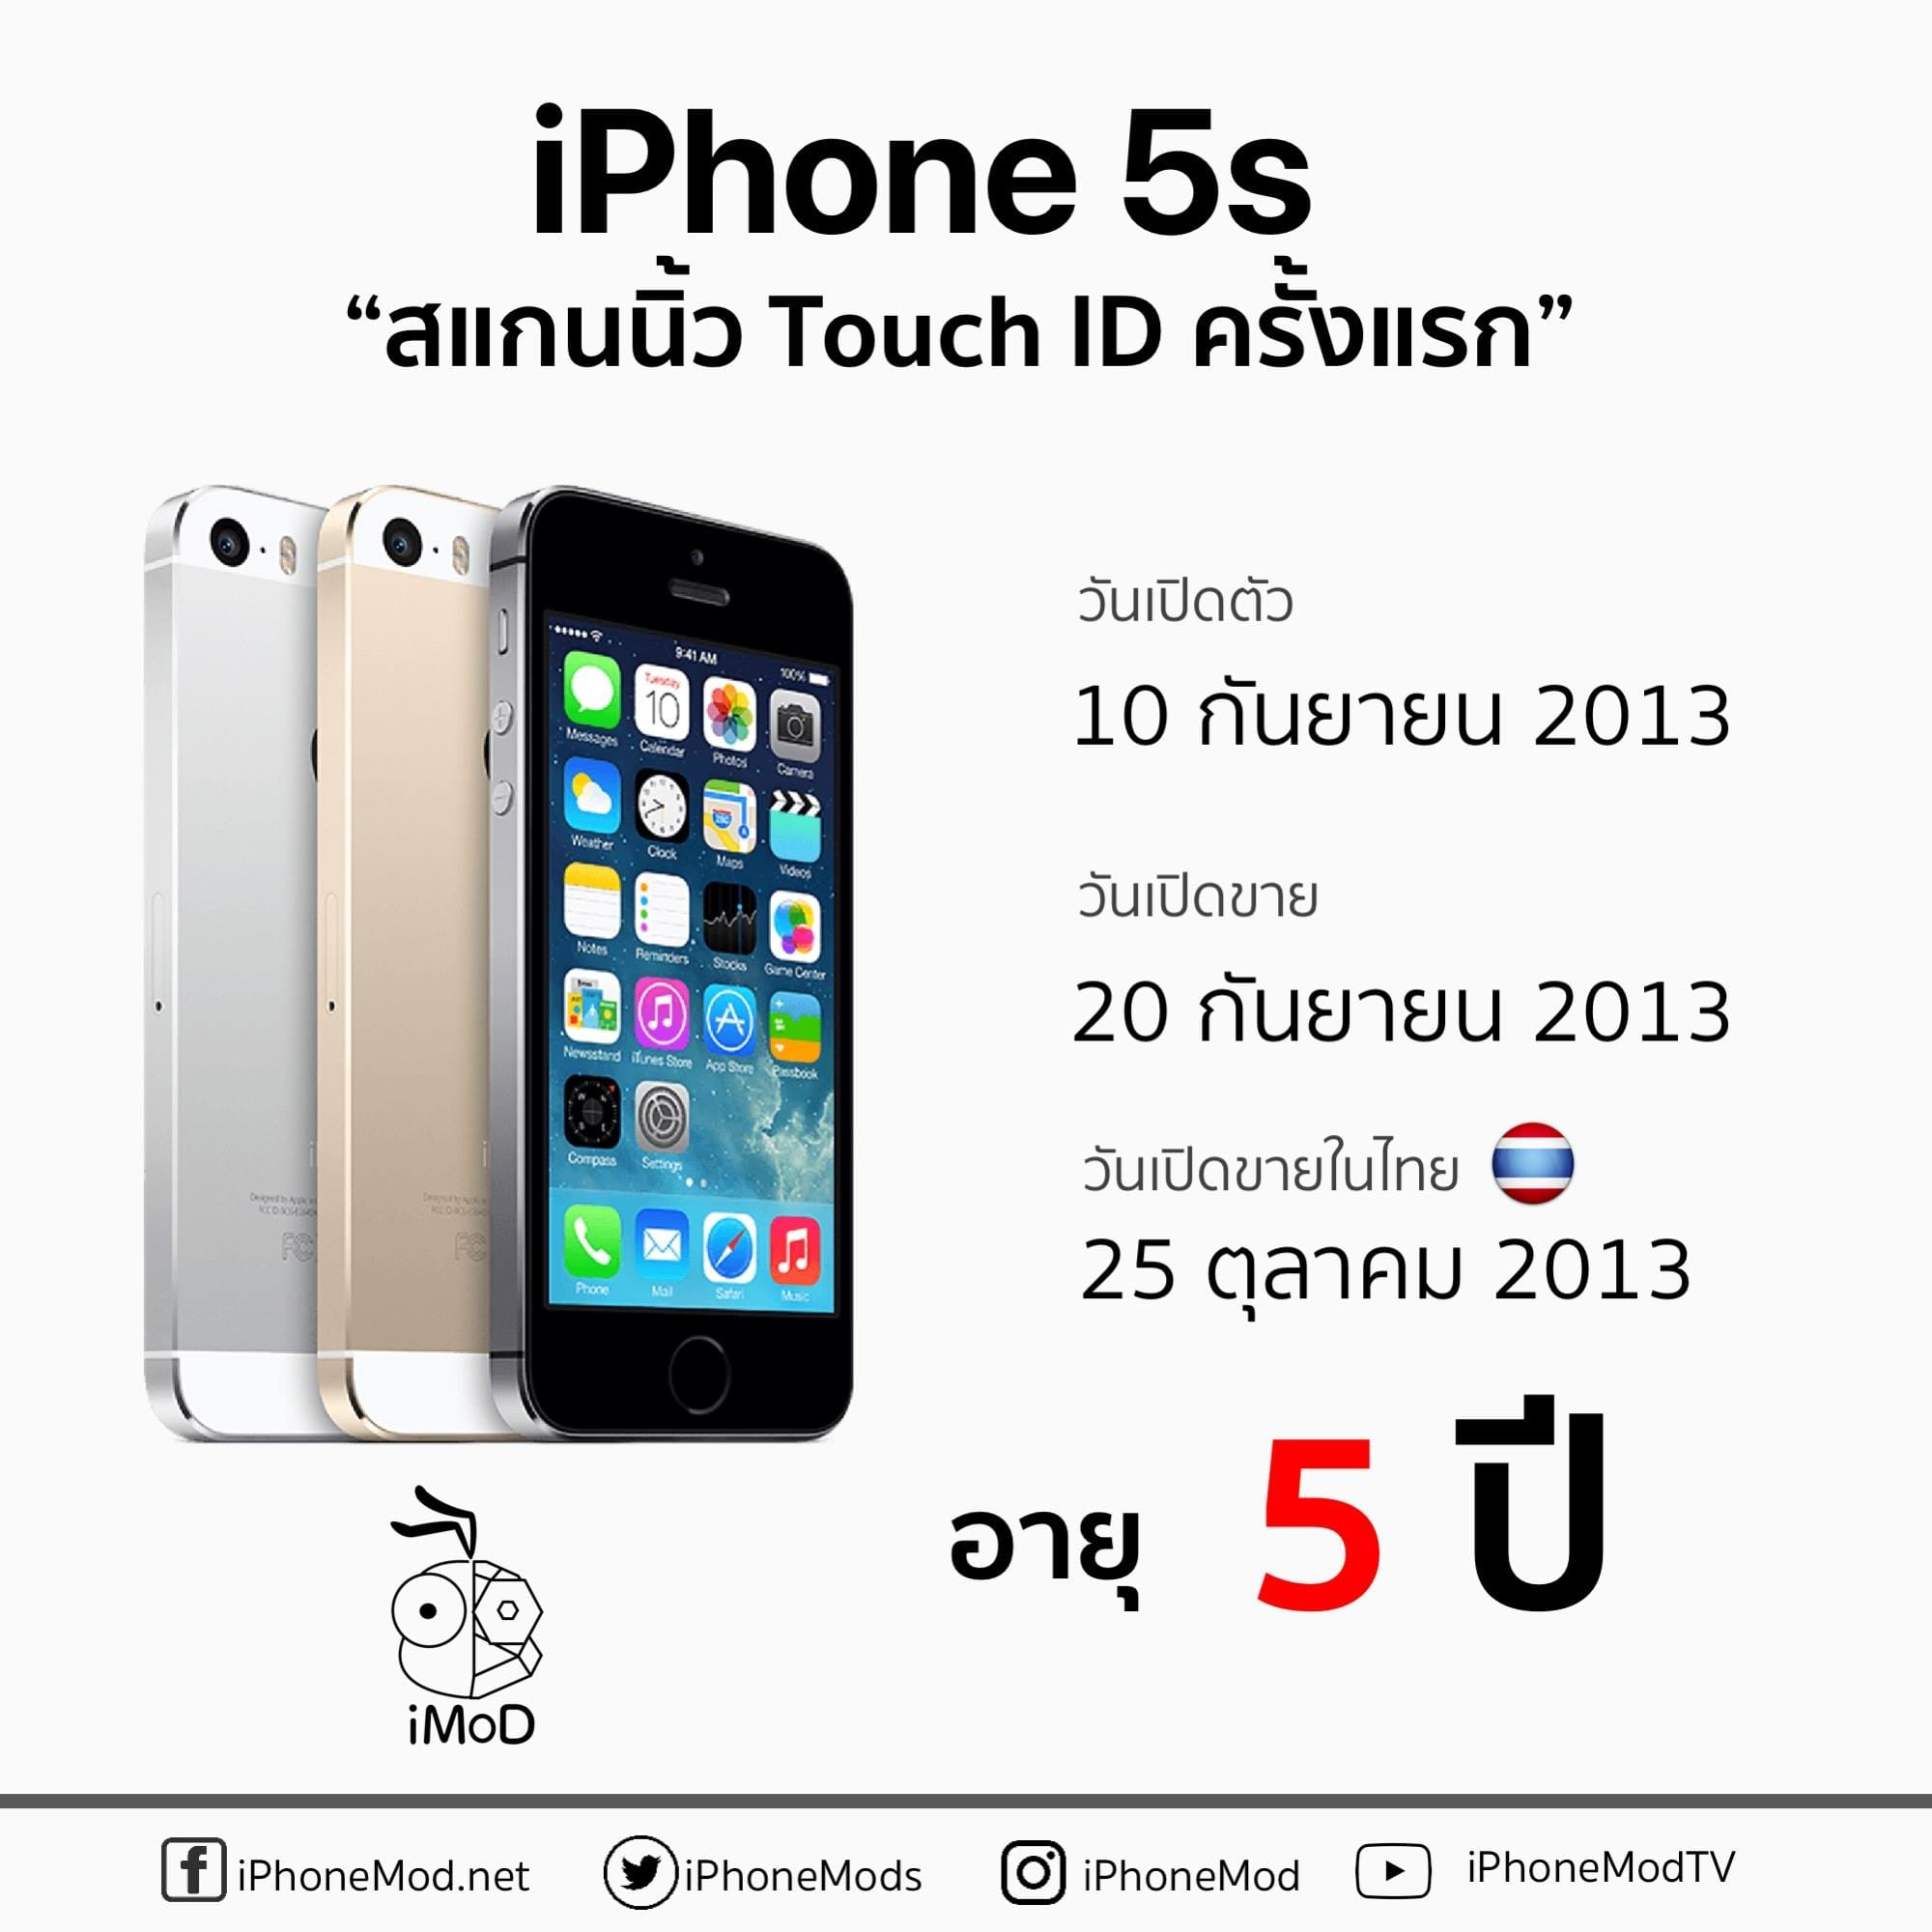 Iphone 5s Launch Thailand